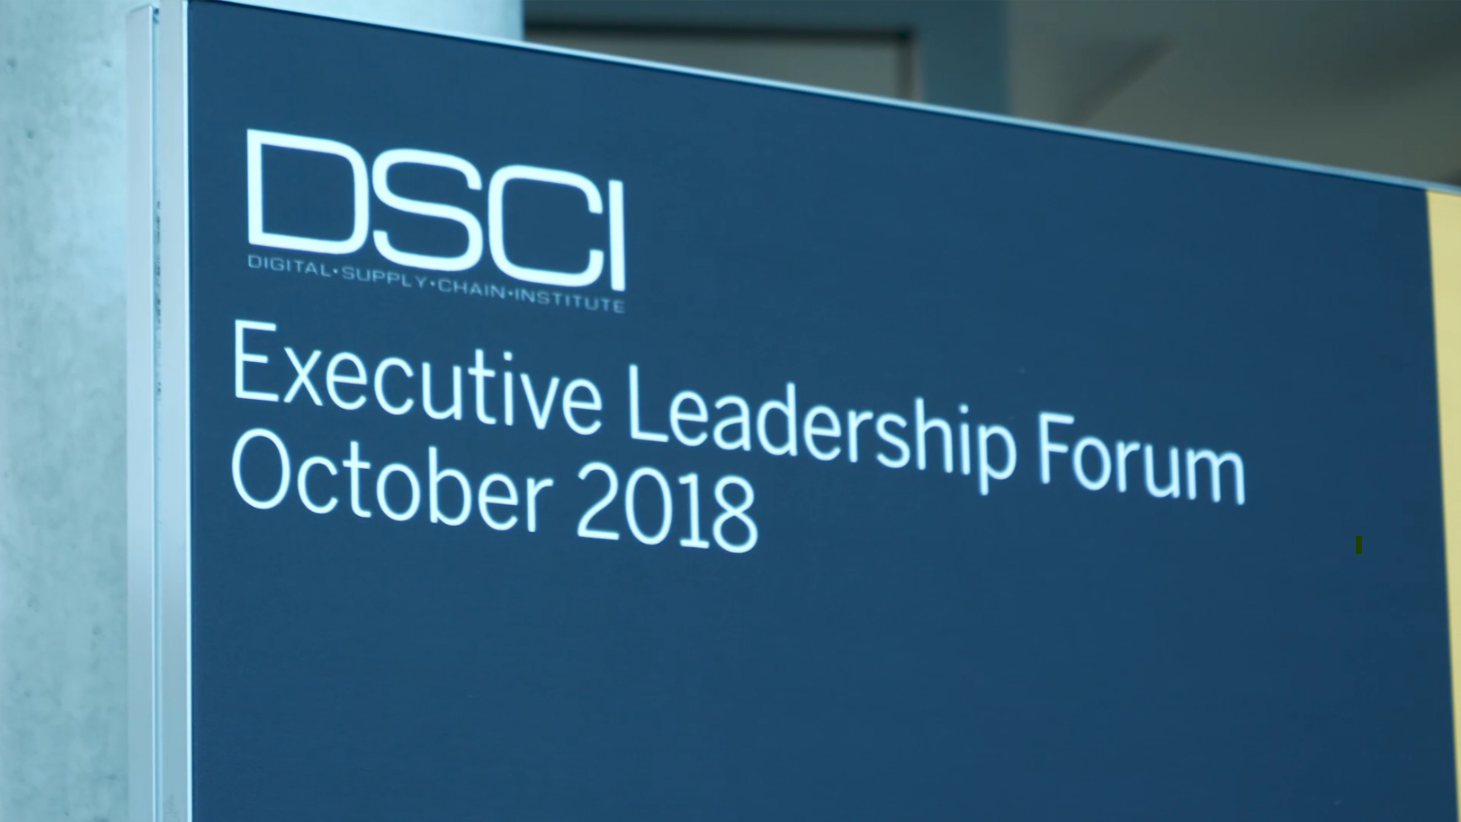 Digital Supply Chain Management: See how the DSCI collaborates with supply chain leaders from across the world